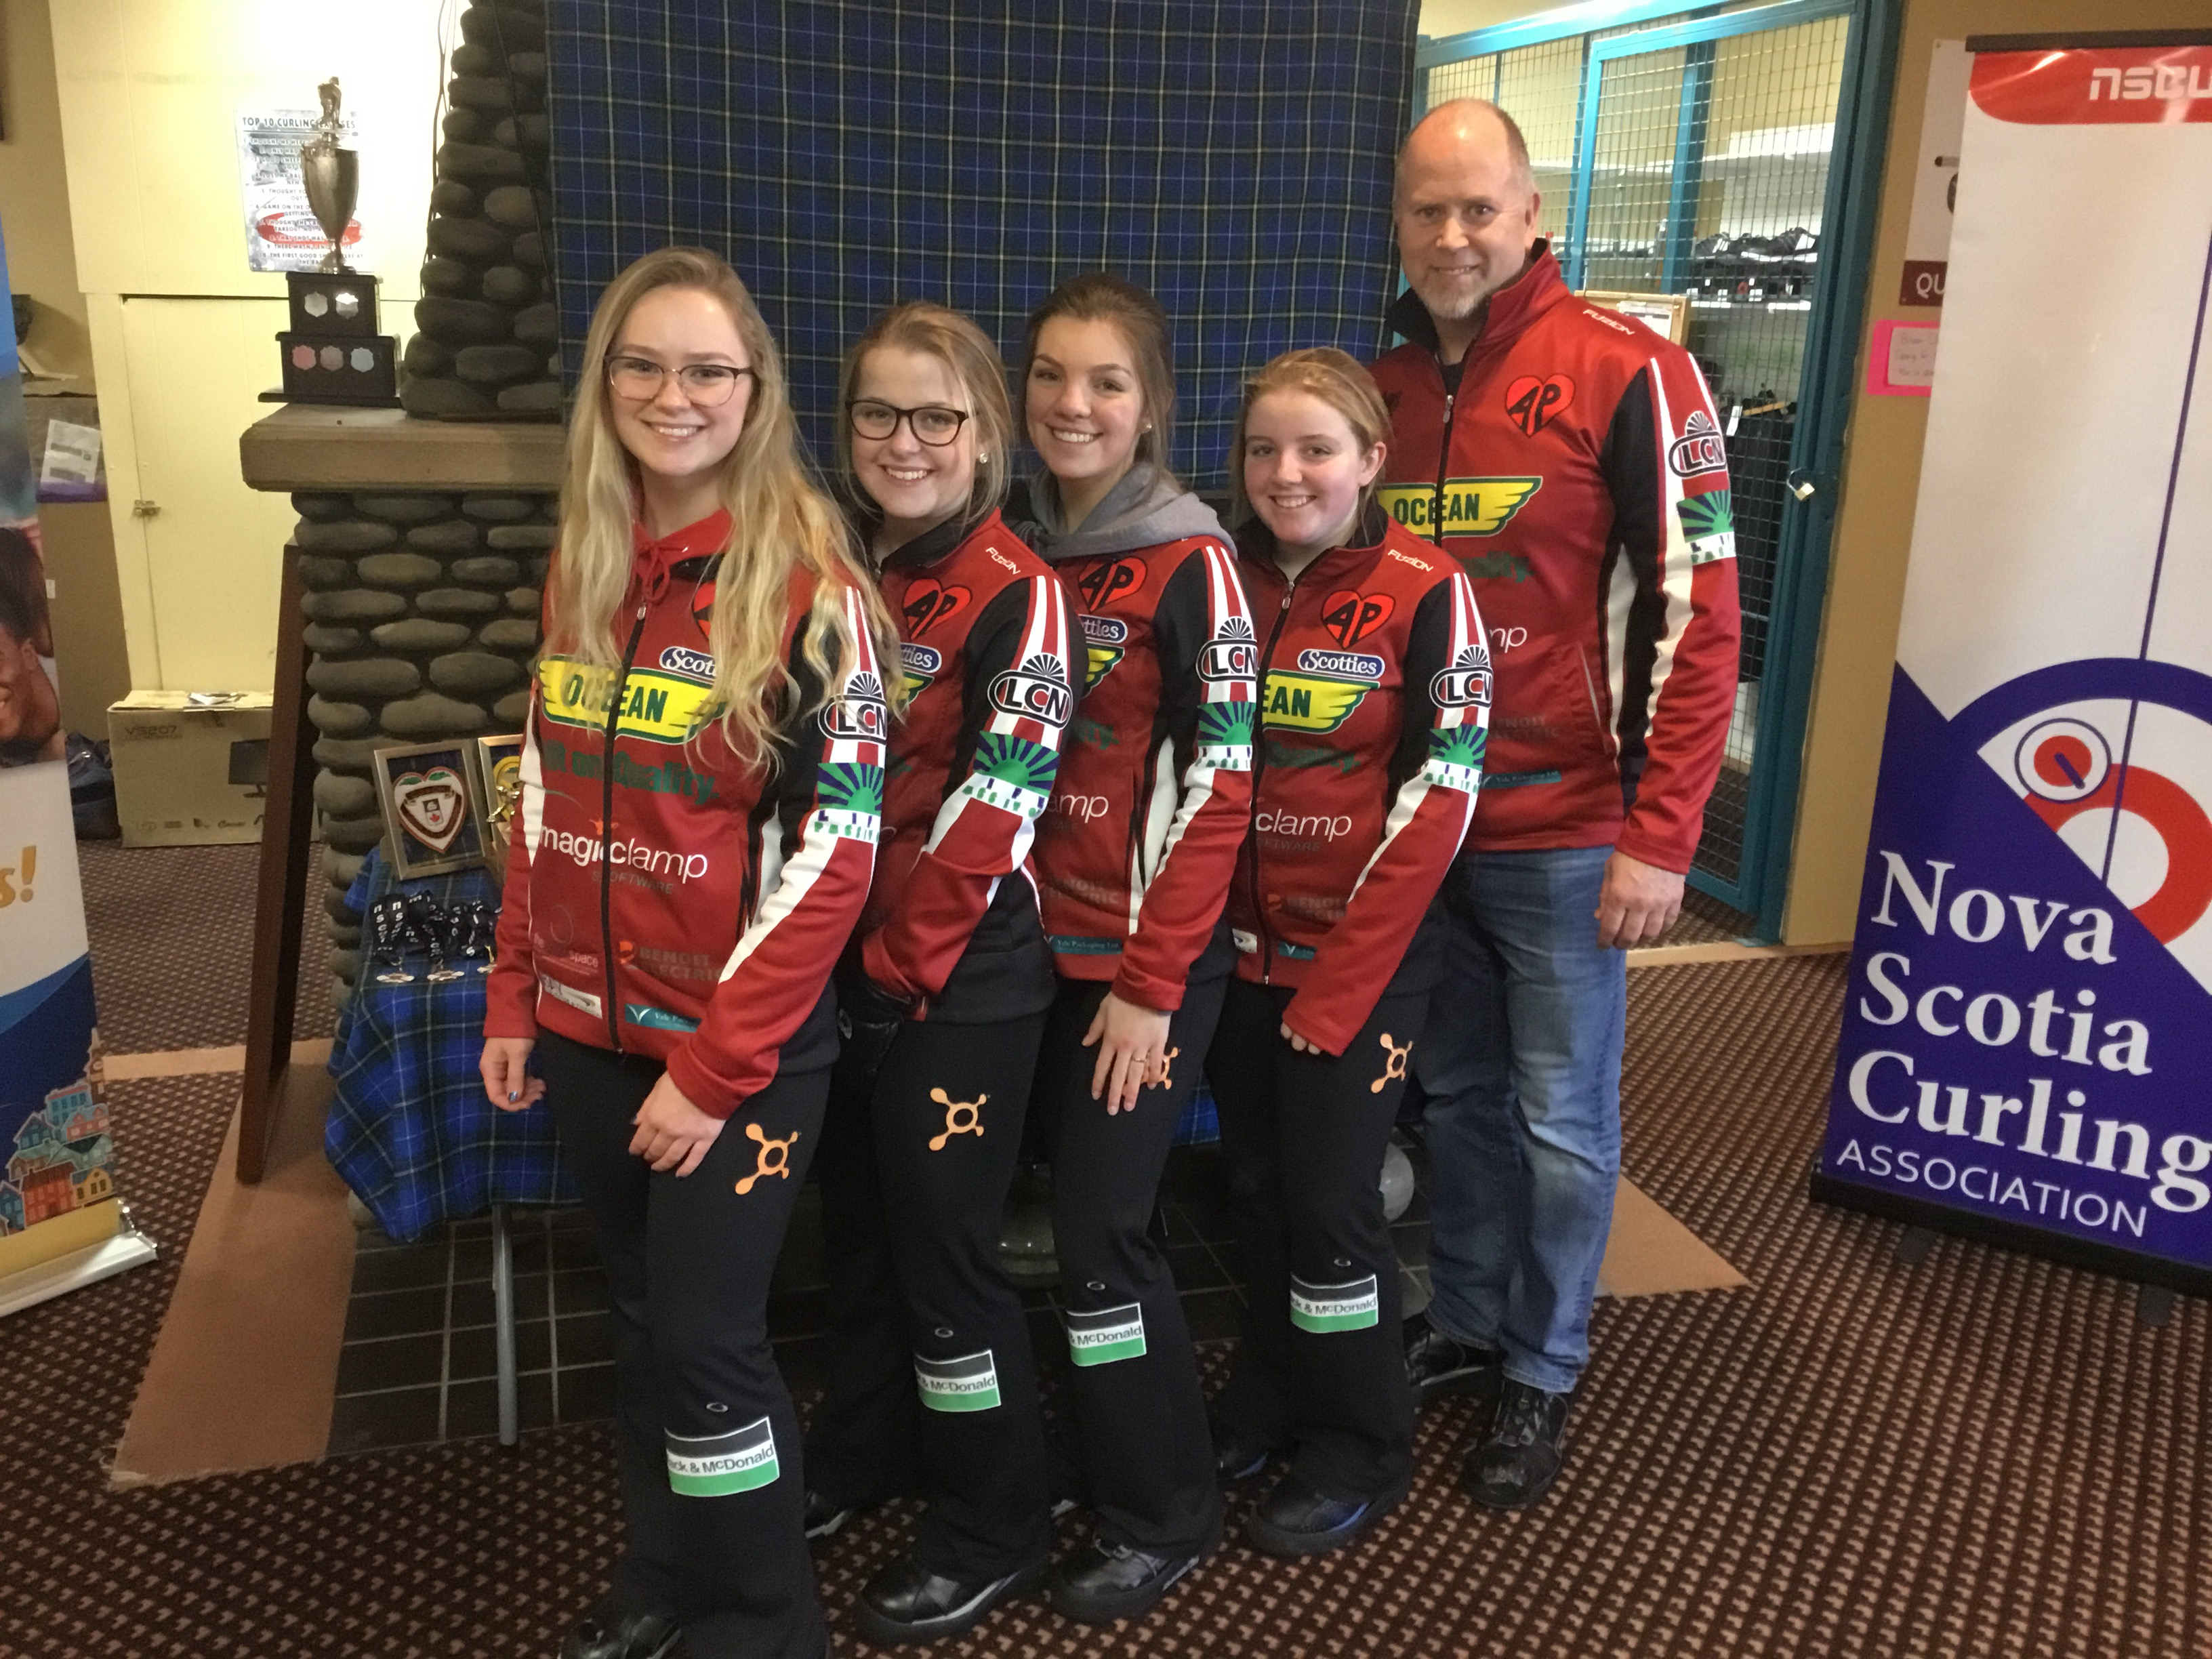 Team Moore Wins 2019 Under 18 Women's Championship